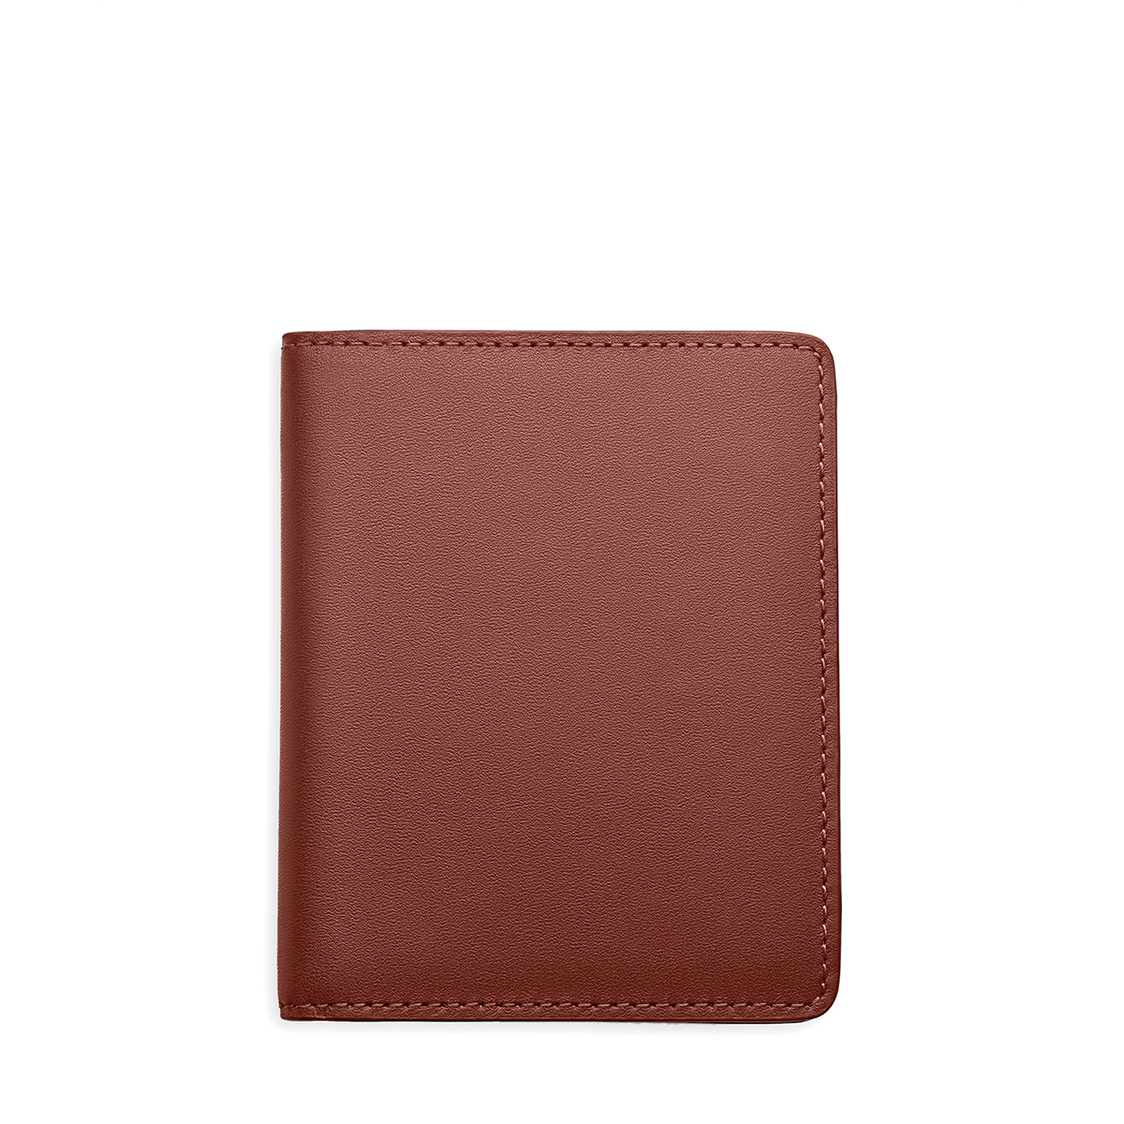 Kyl Wallet - Cognac Leather